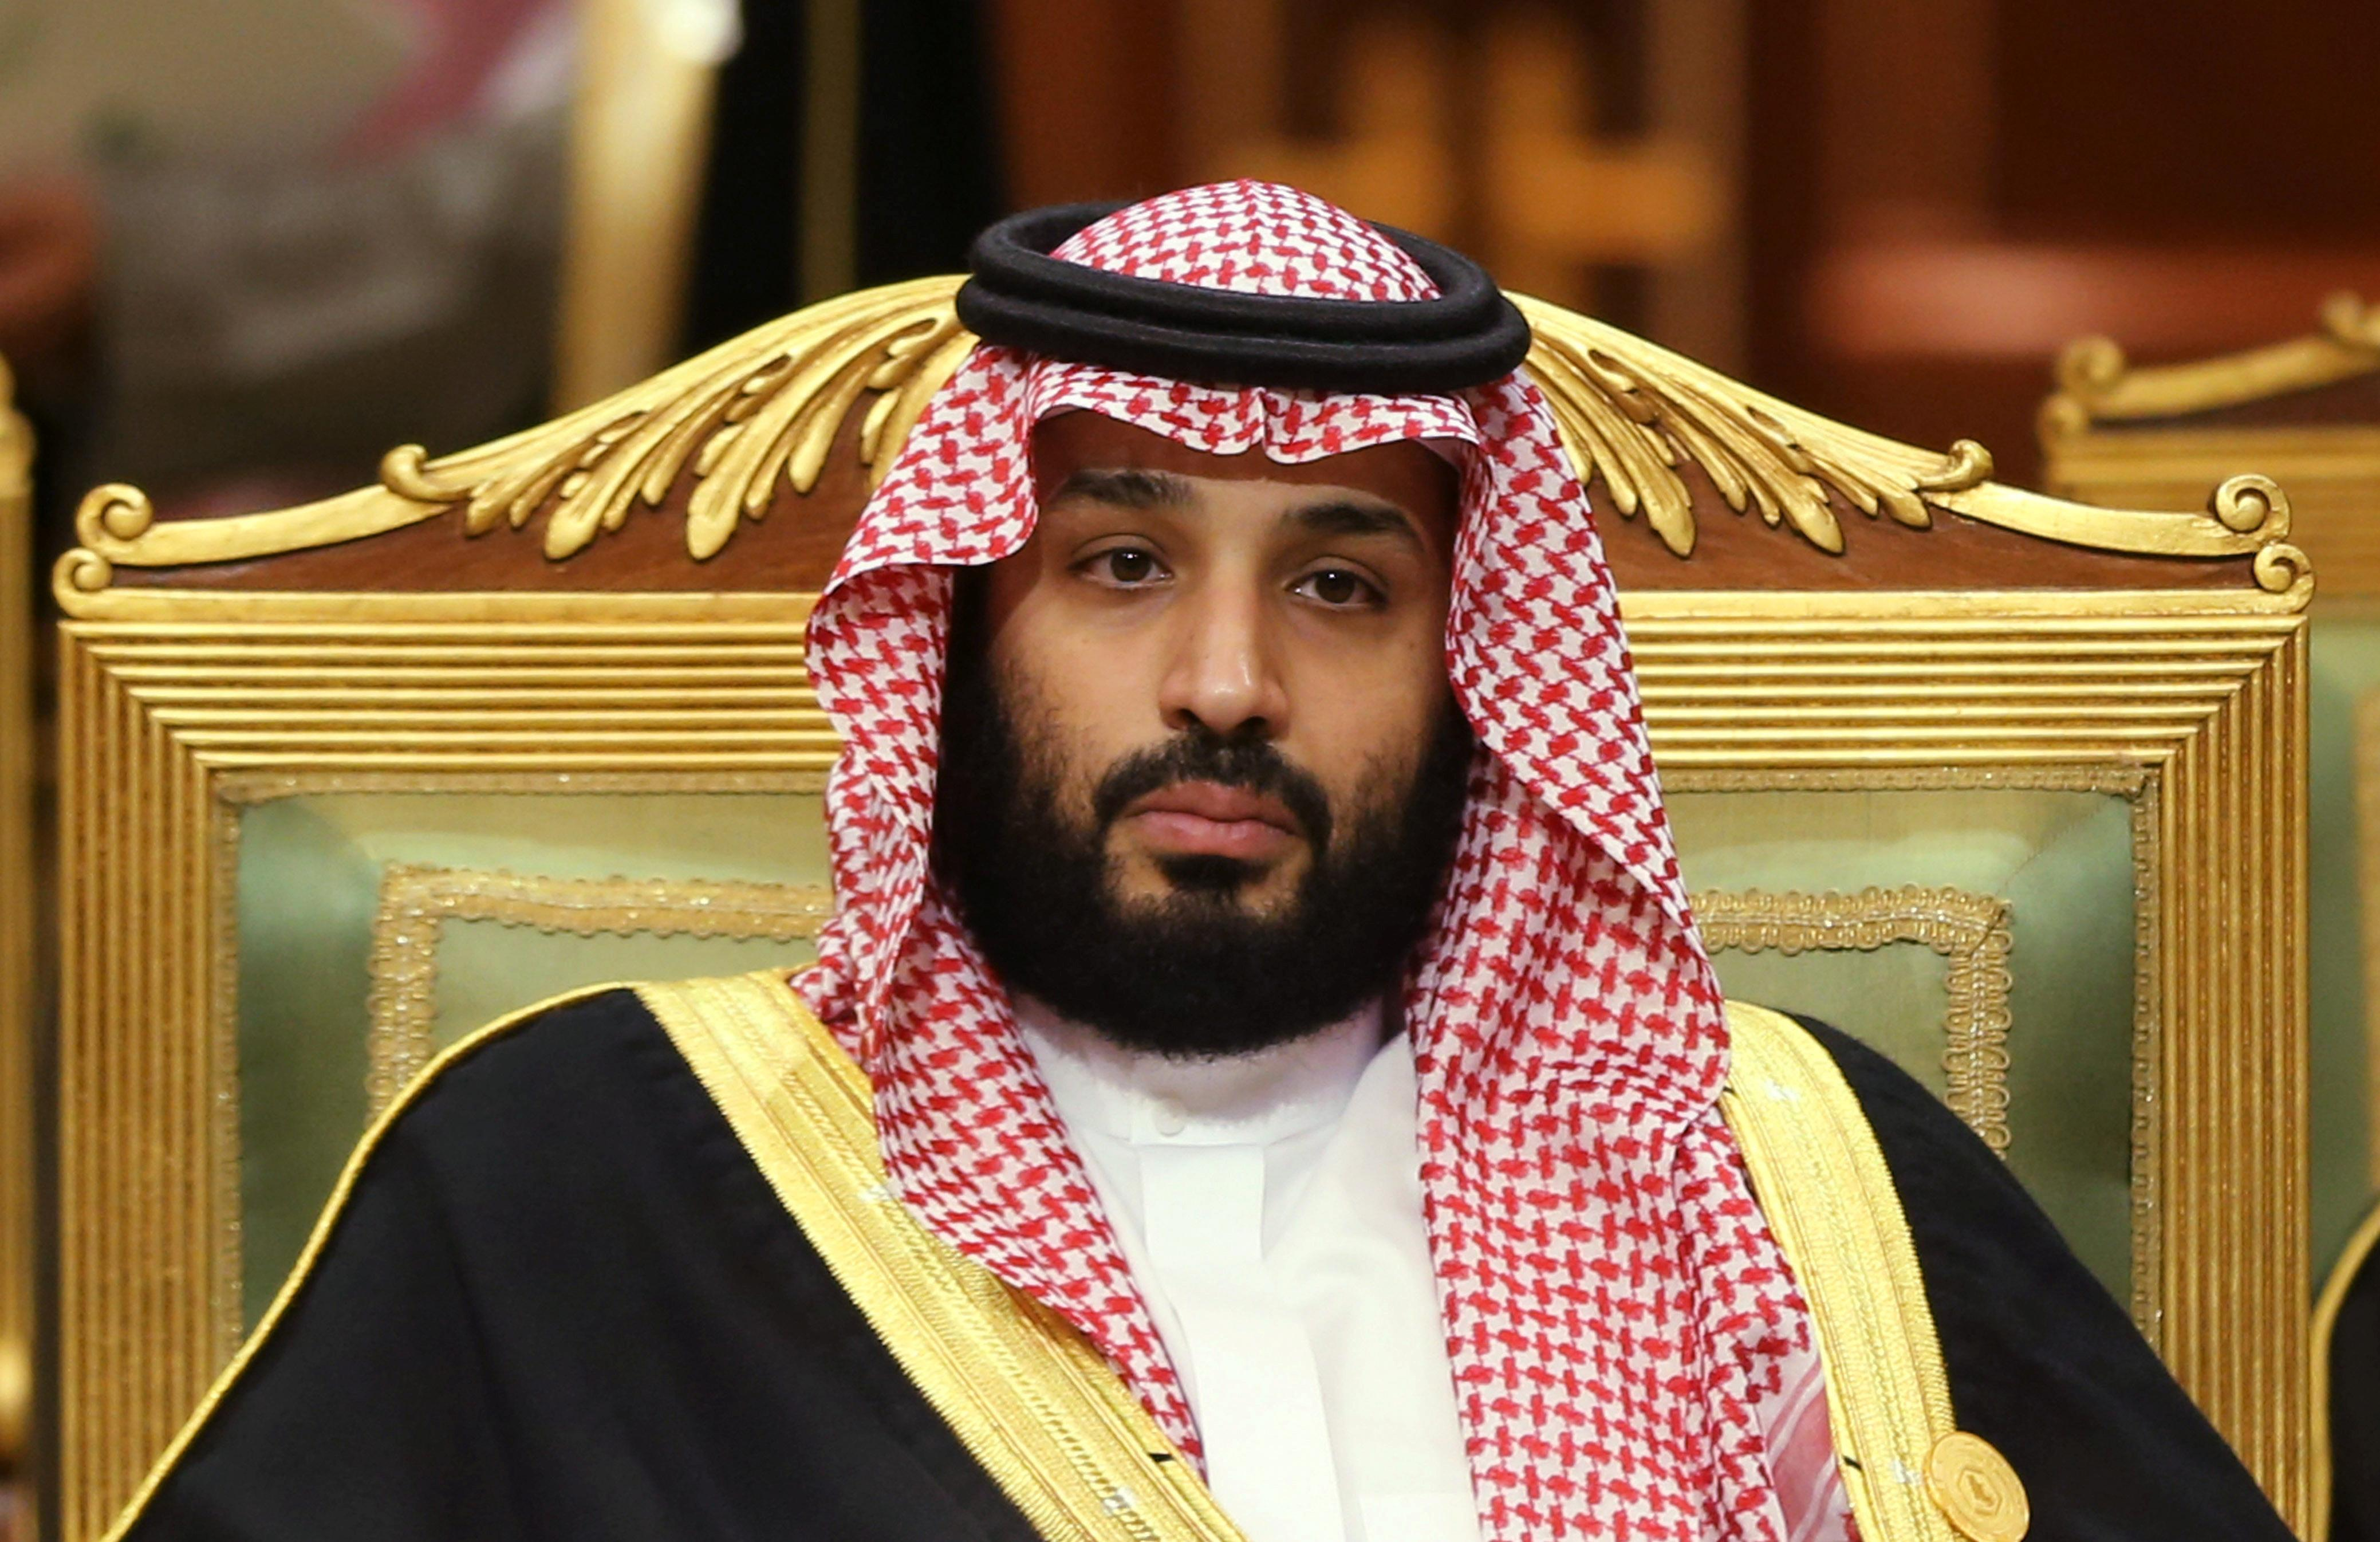 Saudis hail 'fortune-telling' prince for Aramco price prediction